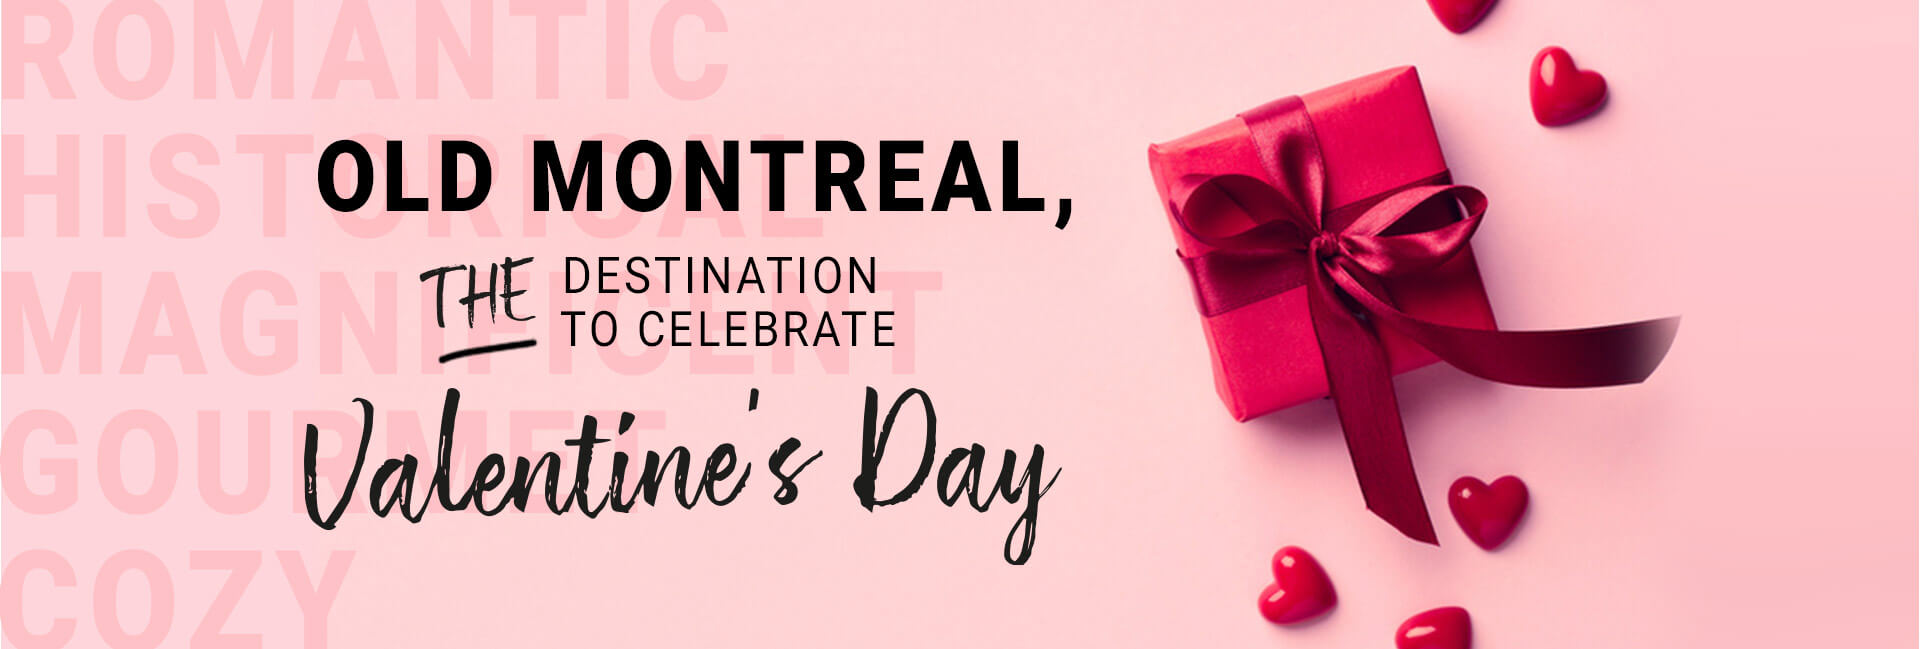 Valentine's Day in Old Montreal